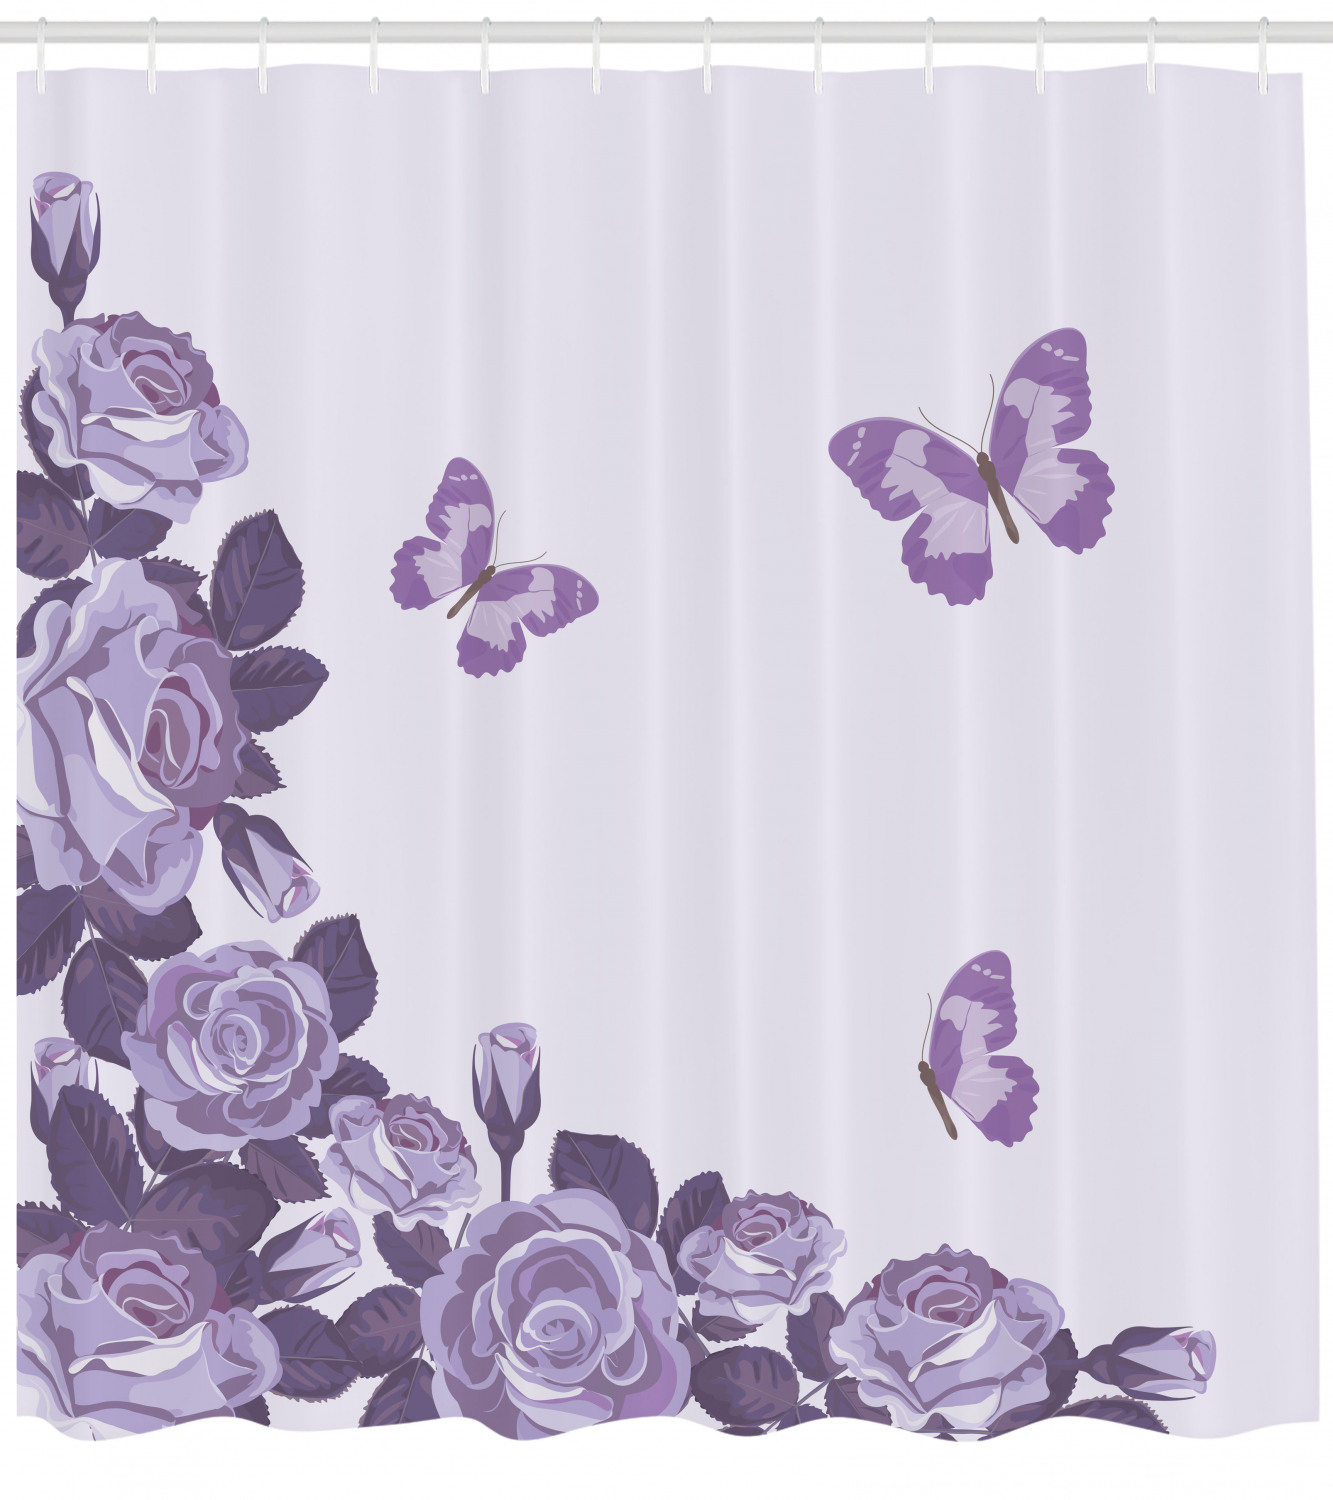 lilac shower curtain bridal composition with rose buds blossoms flying butterflies summer wedding fabric bathroom set with hooks 69w x 70l inches